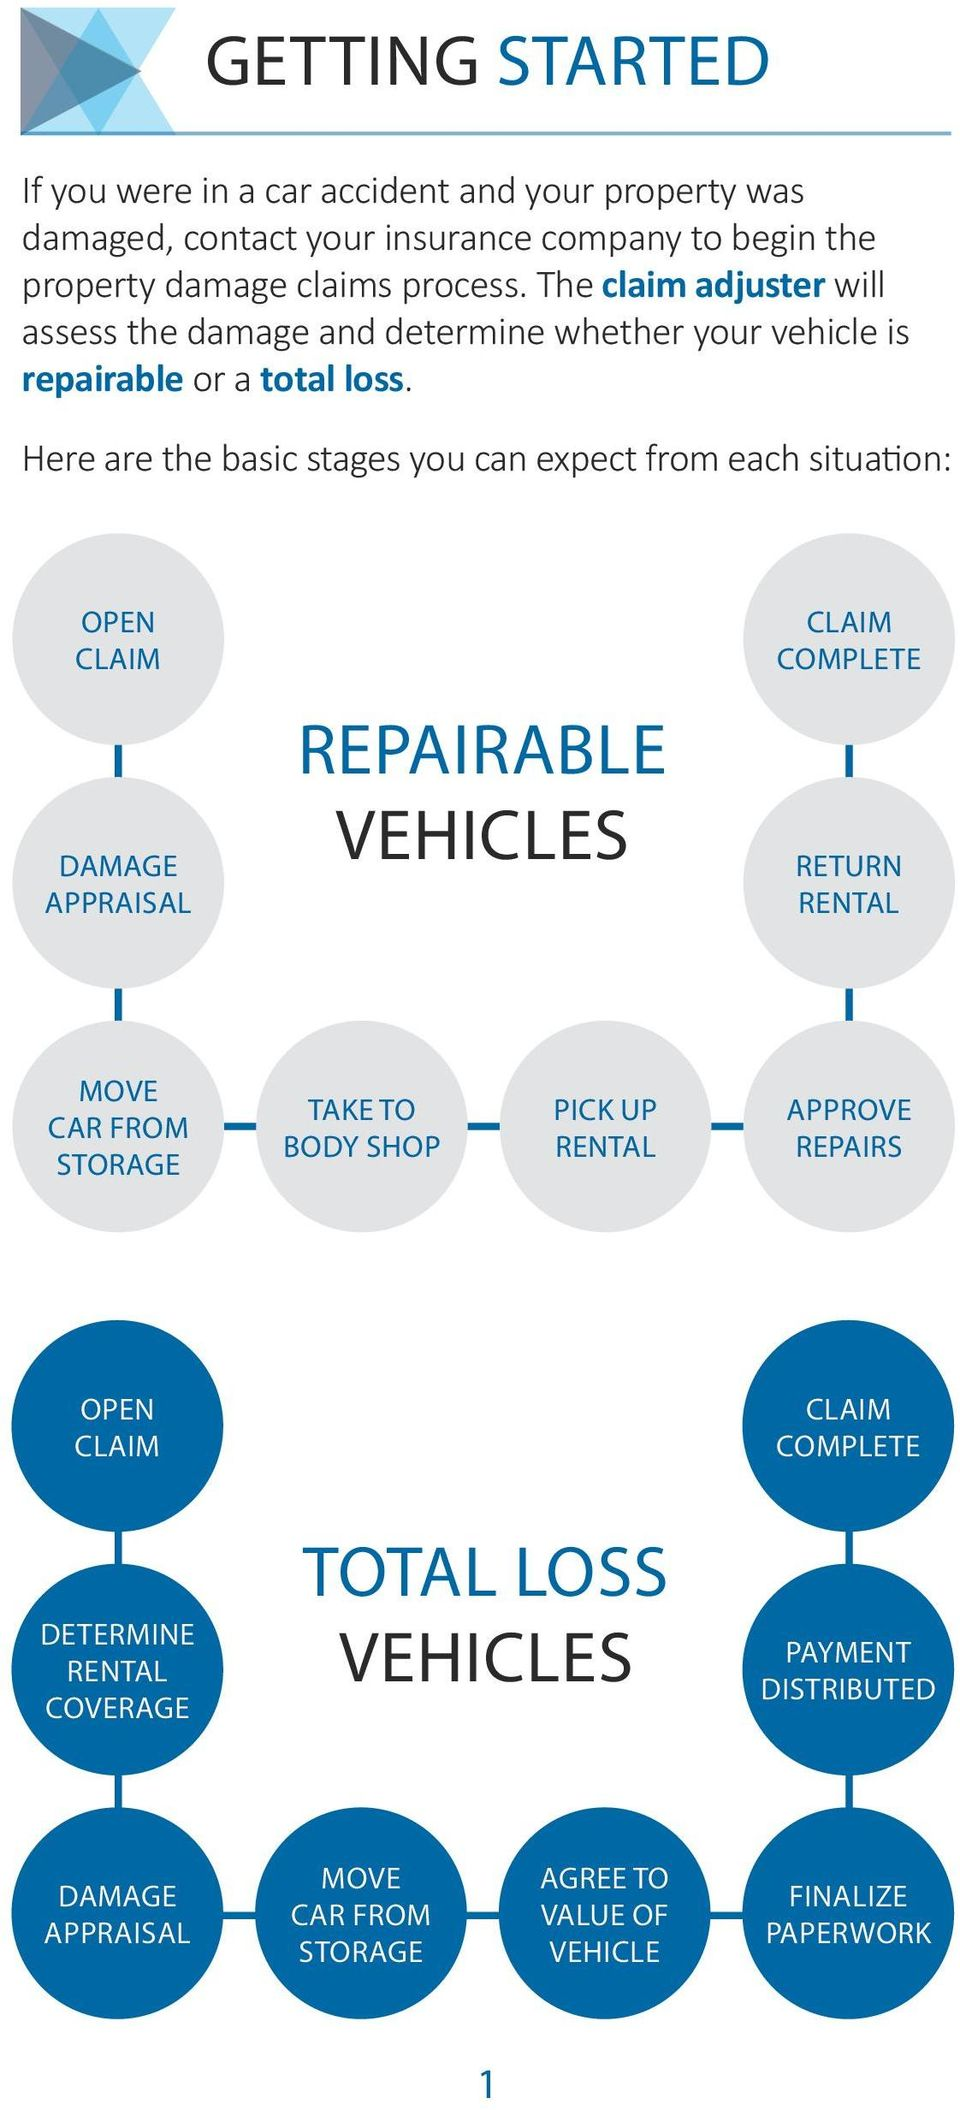 Here are the basic stages you can expect from each situation: OPEN CLAIM DAMAGE APPRAISAL REPAIRABLE VEHICLES CLAIM COMPLETE RETURN RENTAL MOVE CAR FROM STORAGE